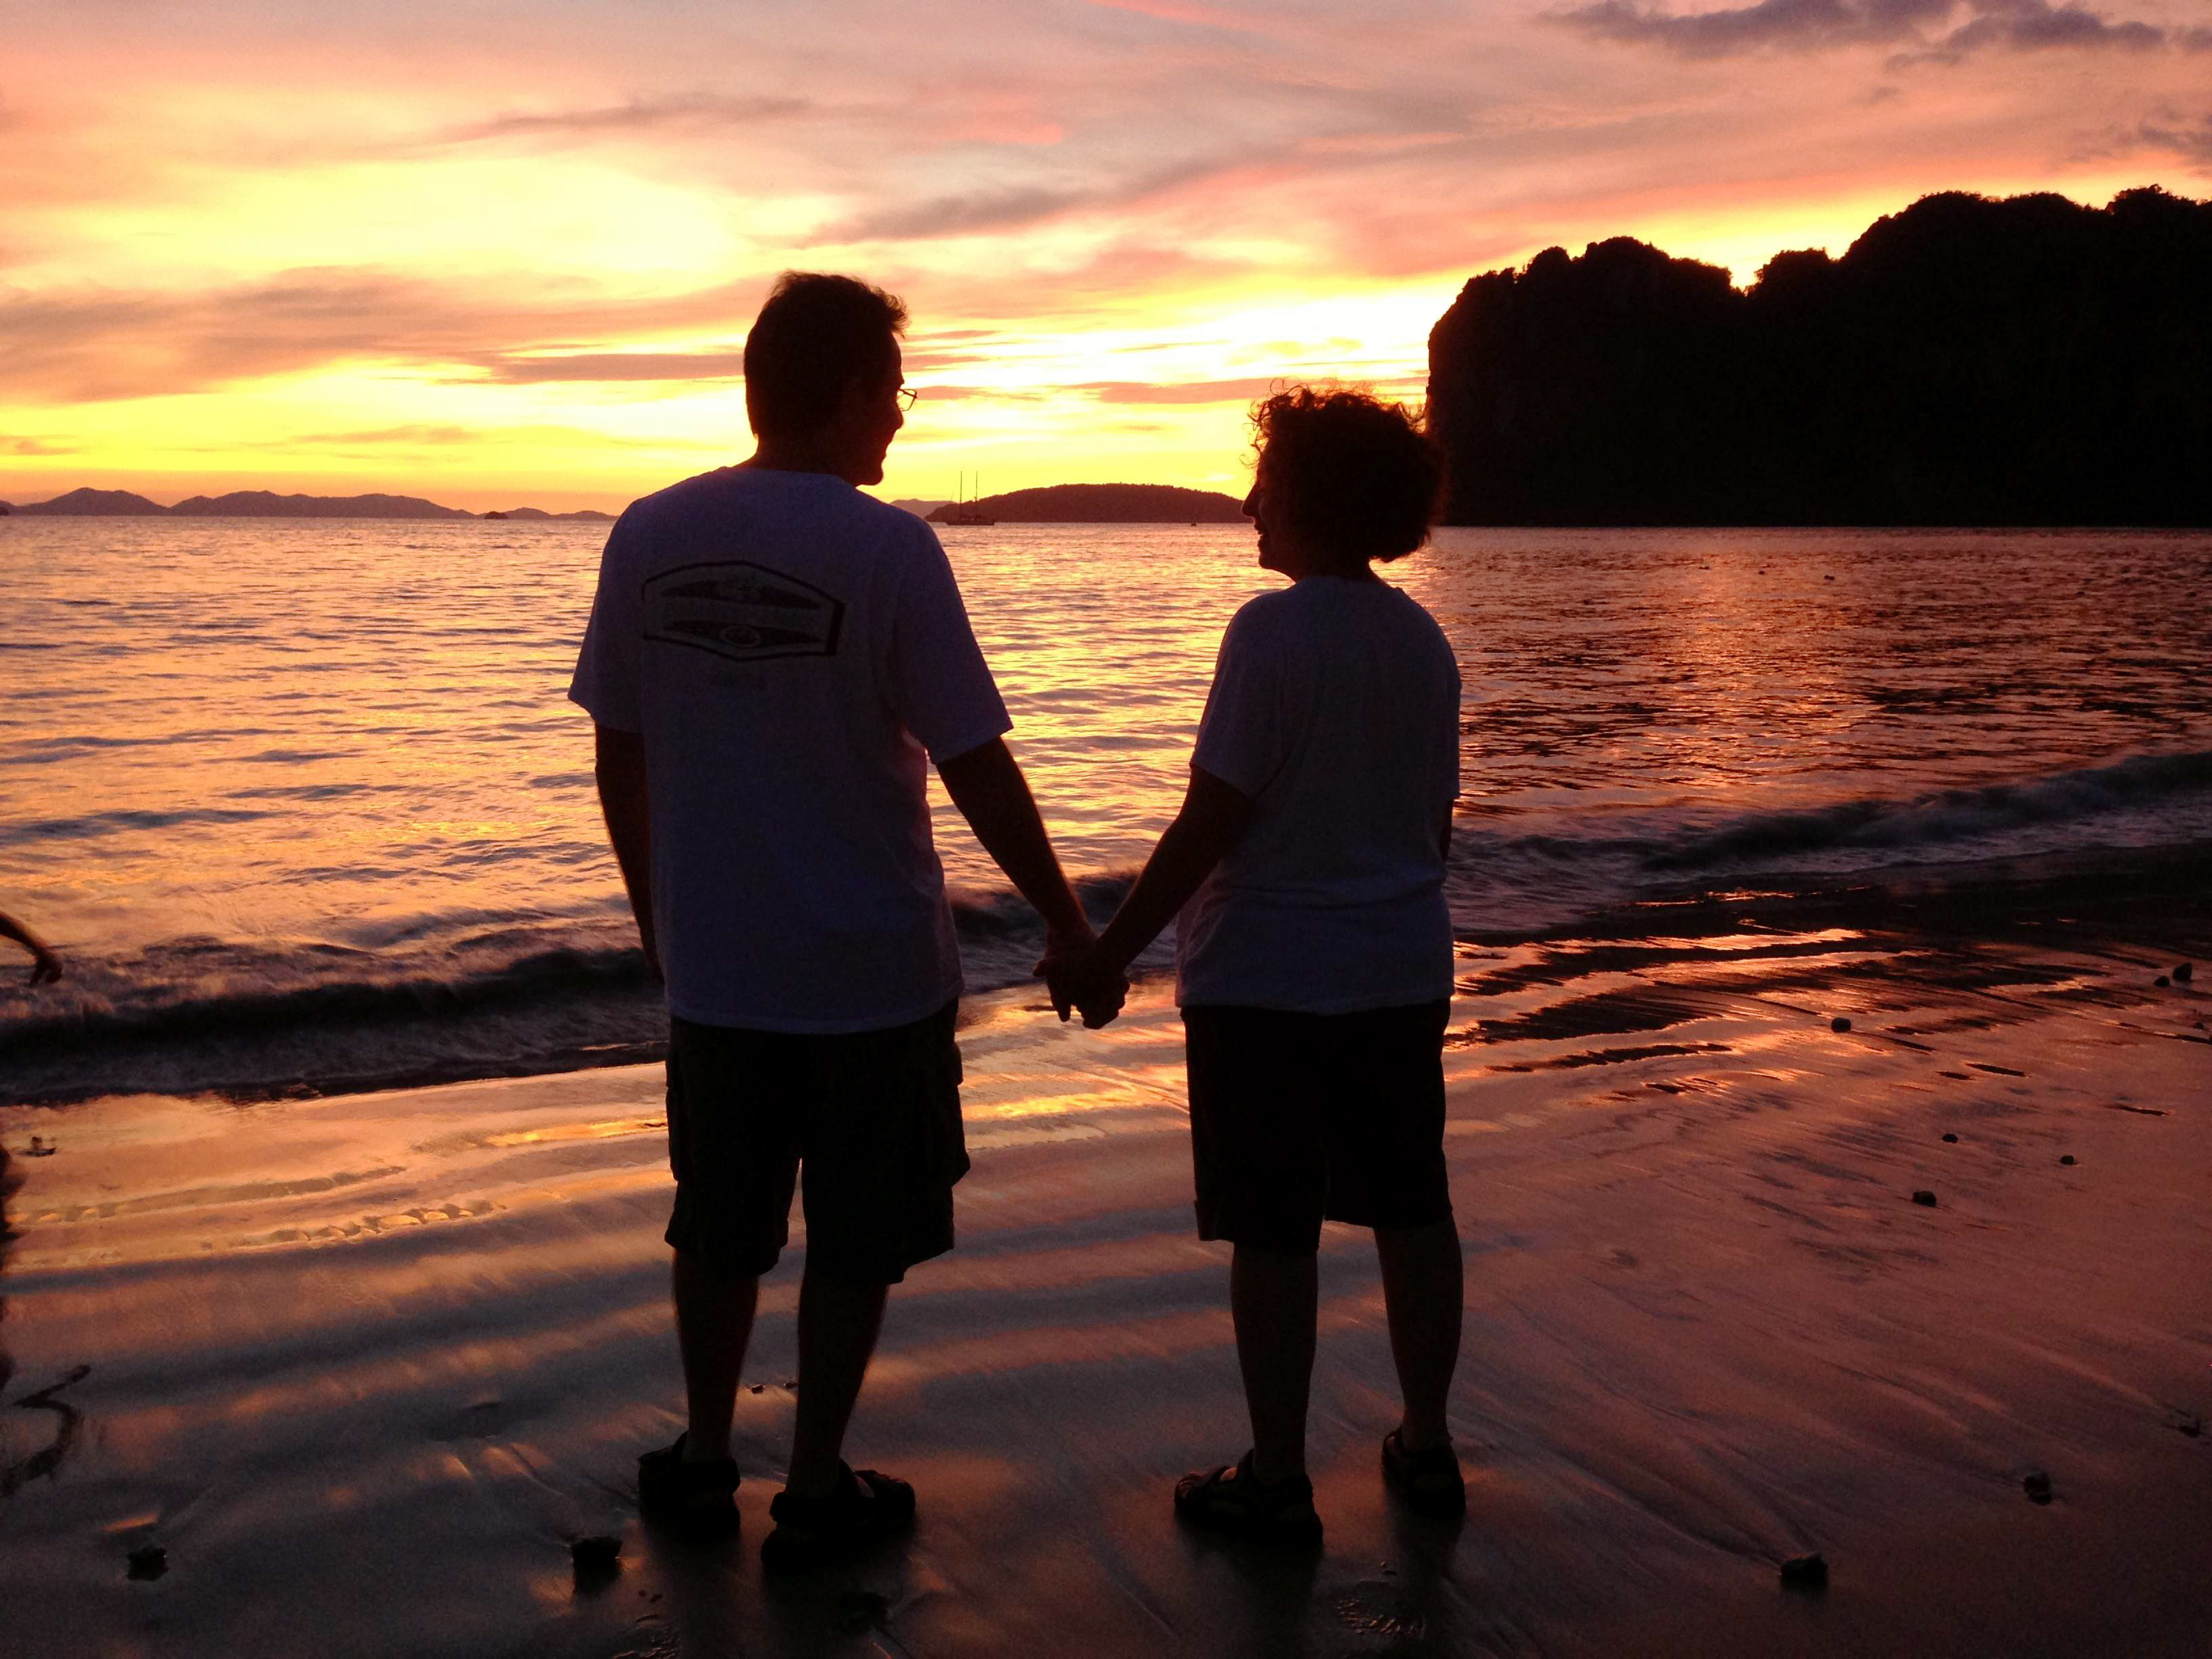 My parents at sunset in Railay